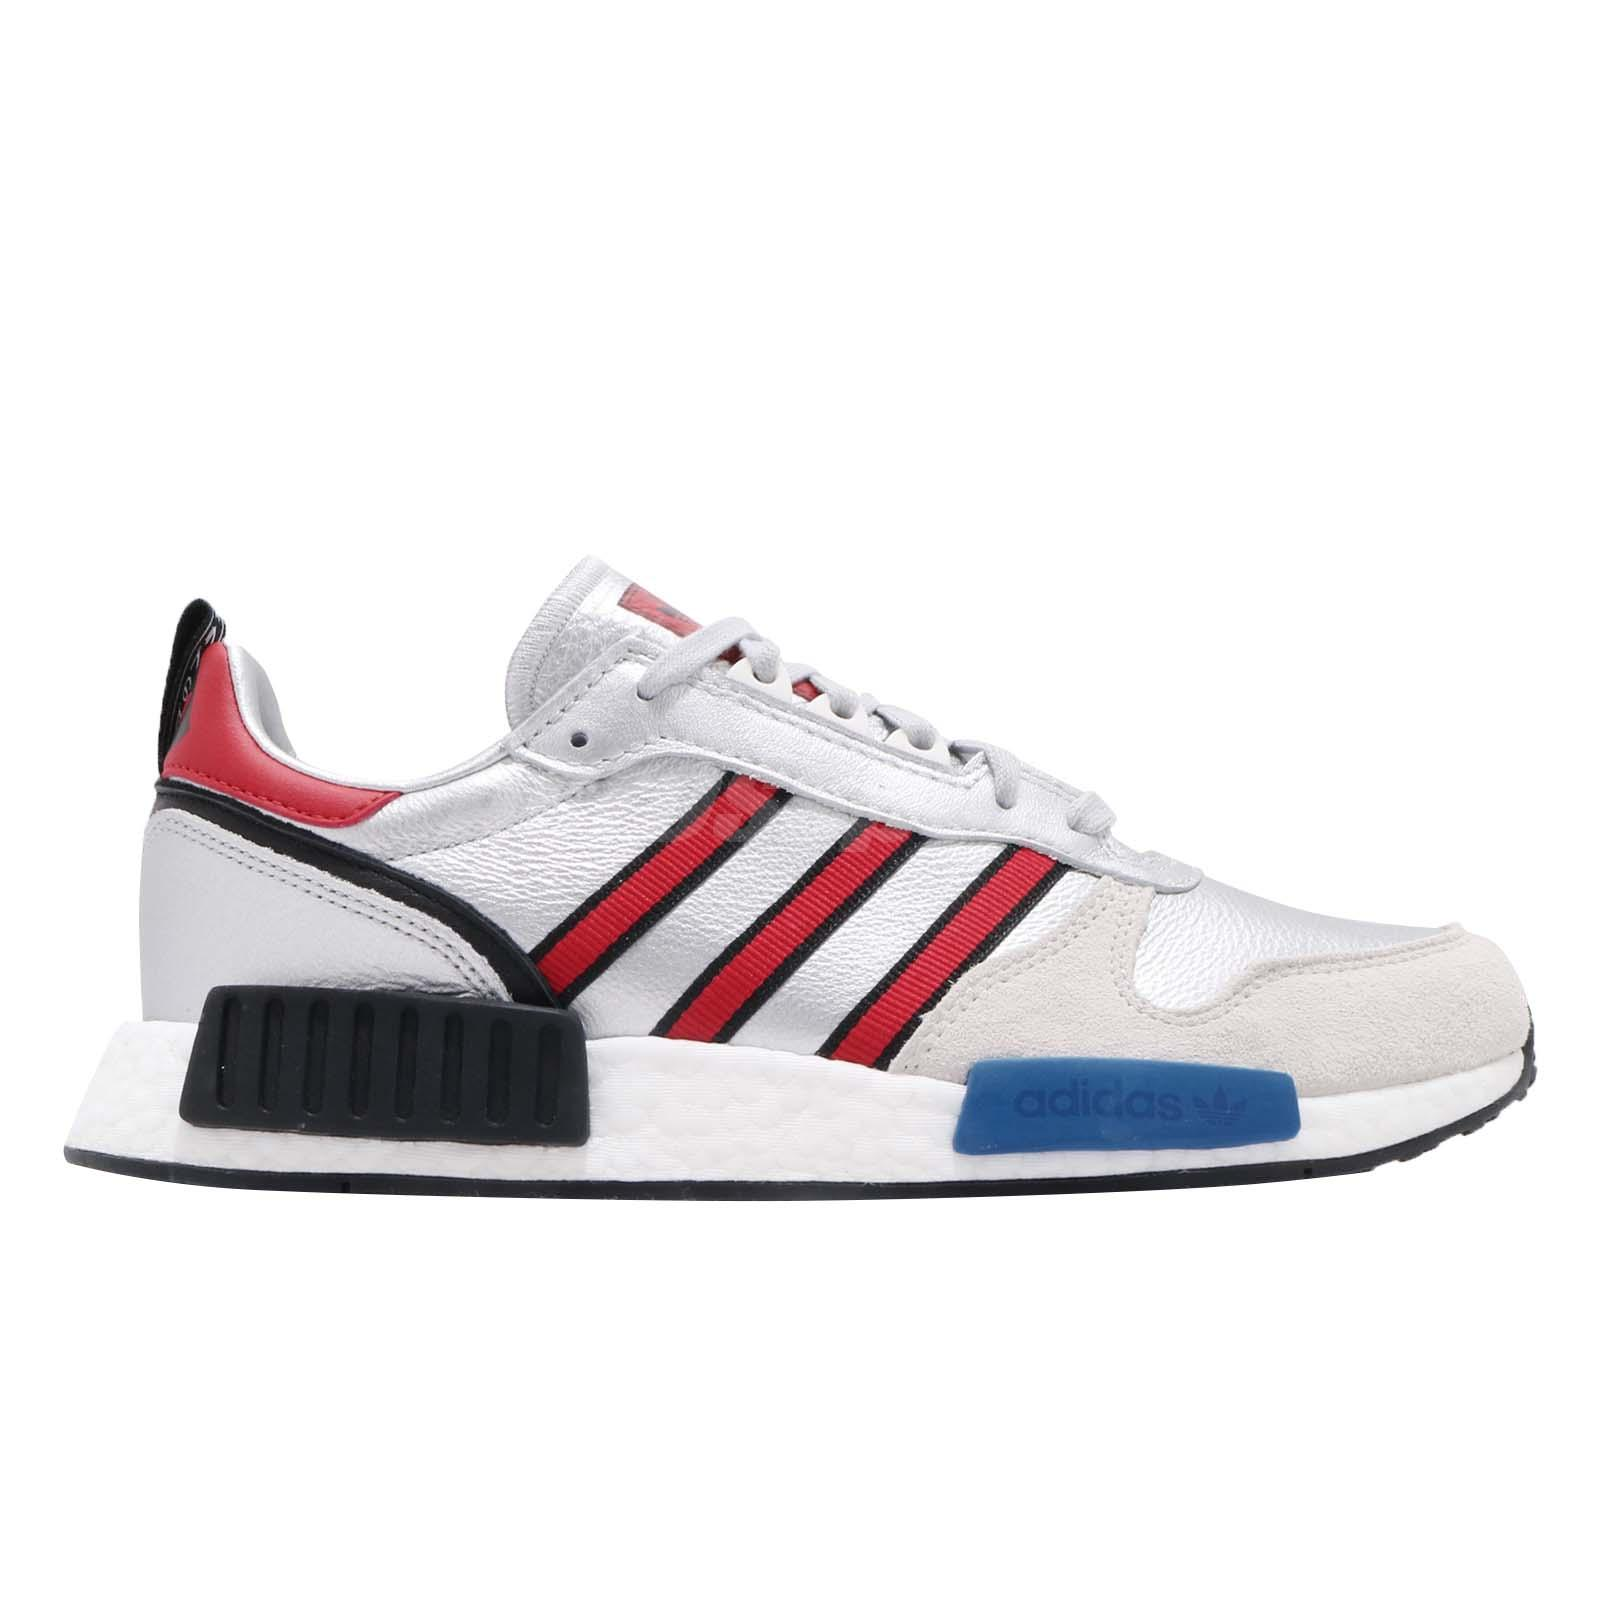 3ac162e33b7aa adidas Originals Rising Star x R1 NMD Never Made Pack Silver Red Men ...